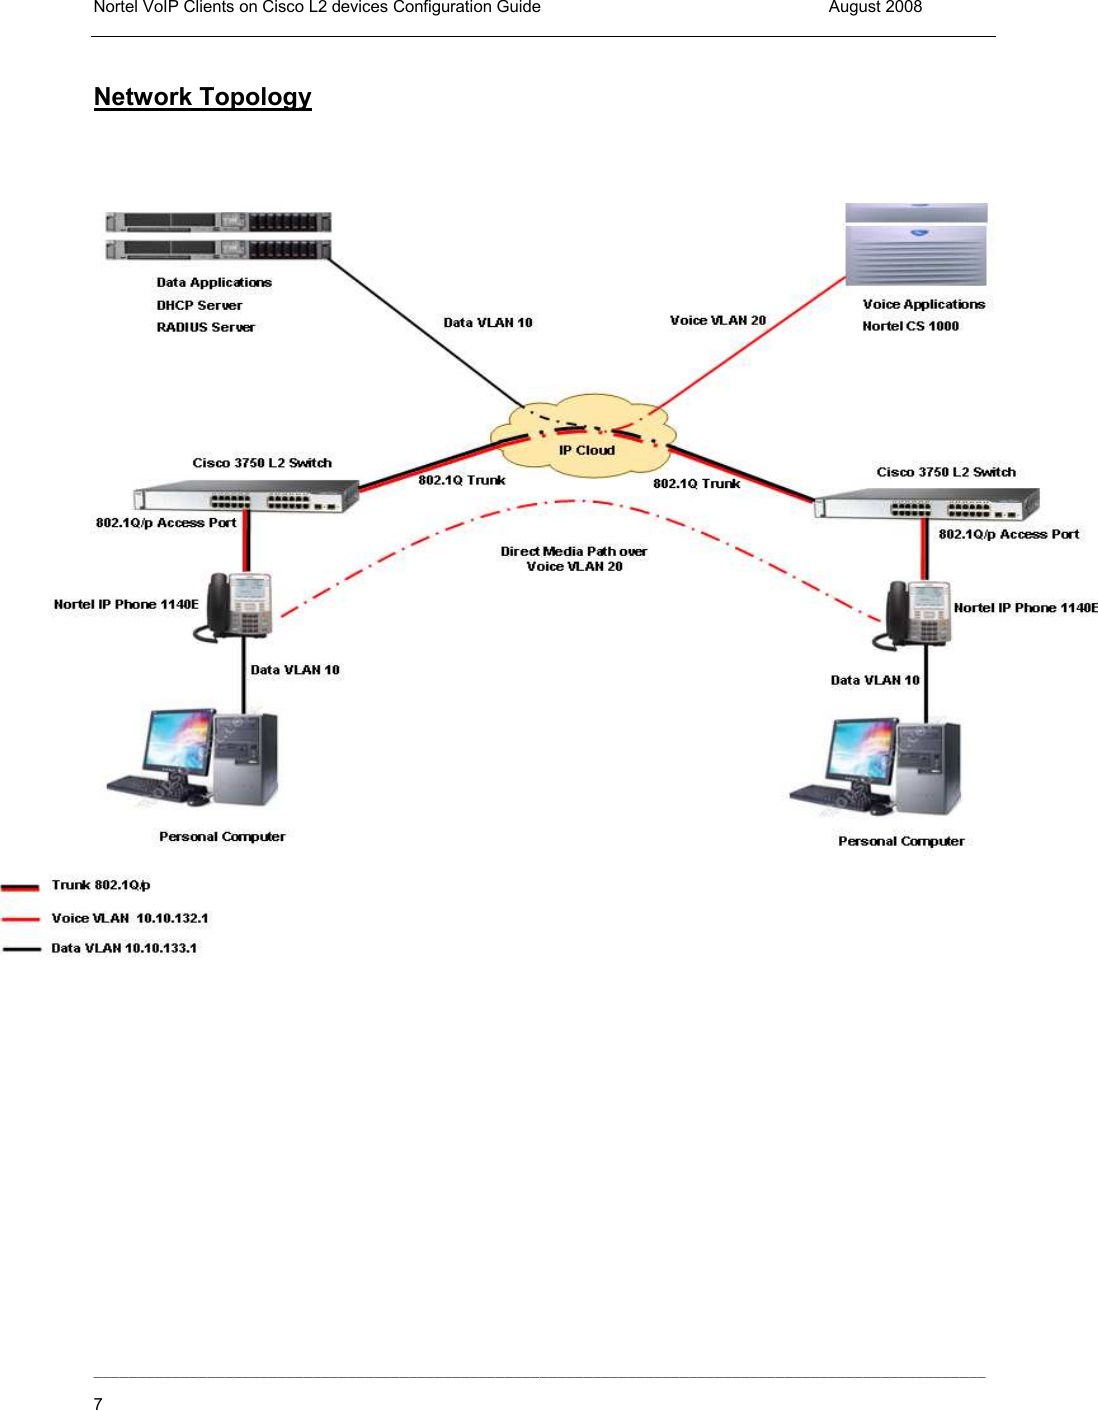 Avaya Ip Phone Inter Working With Cisco L2 Switches Configuration Guide